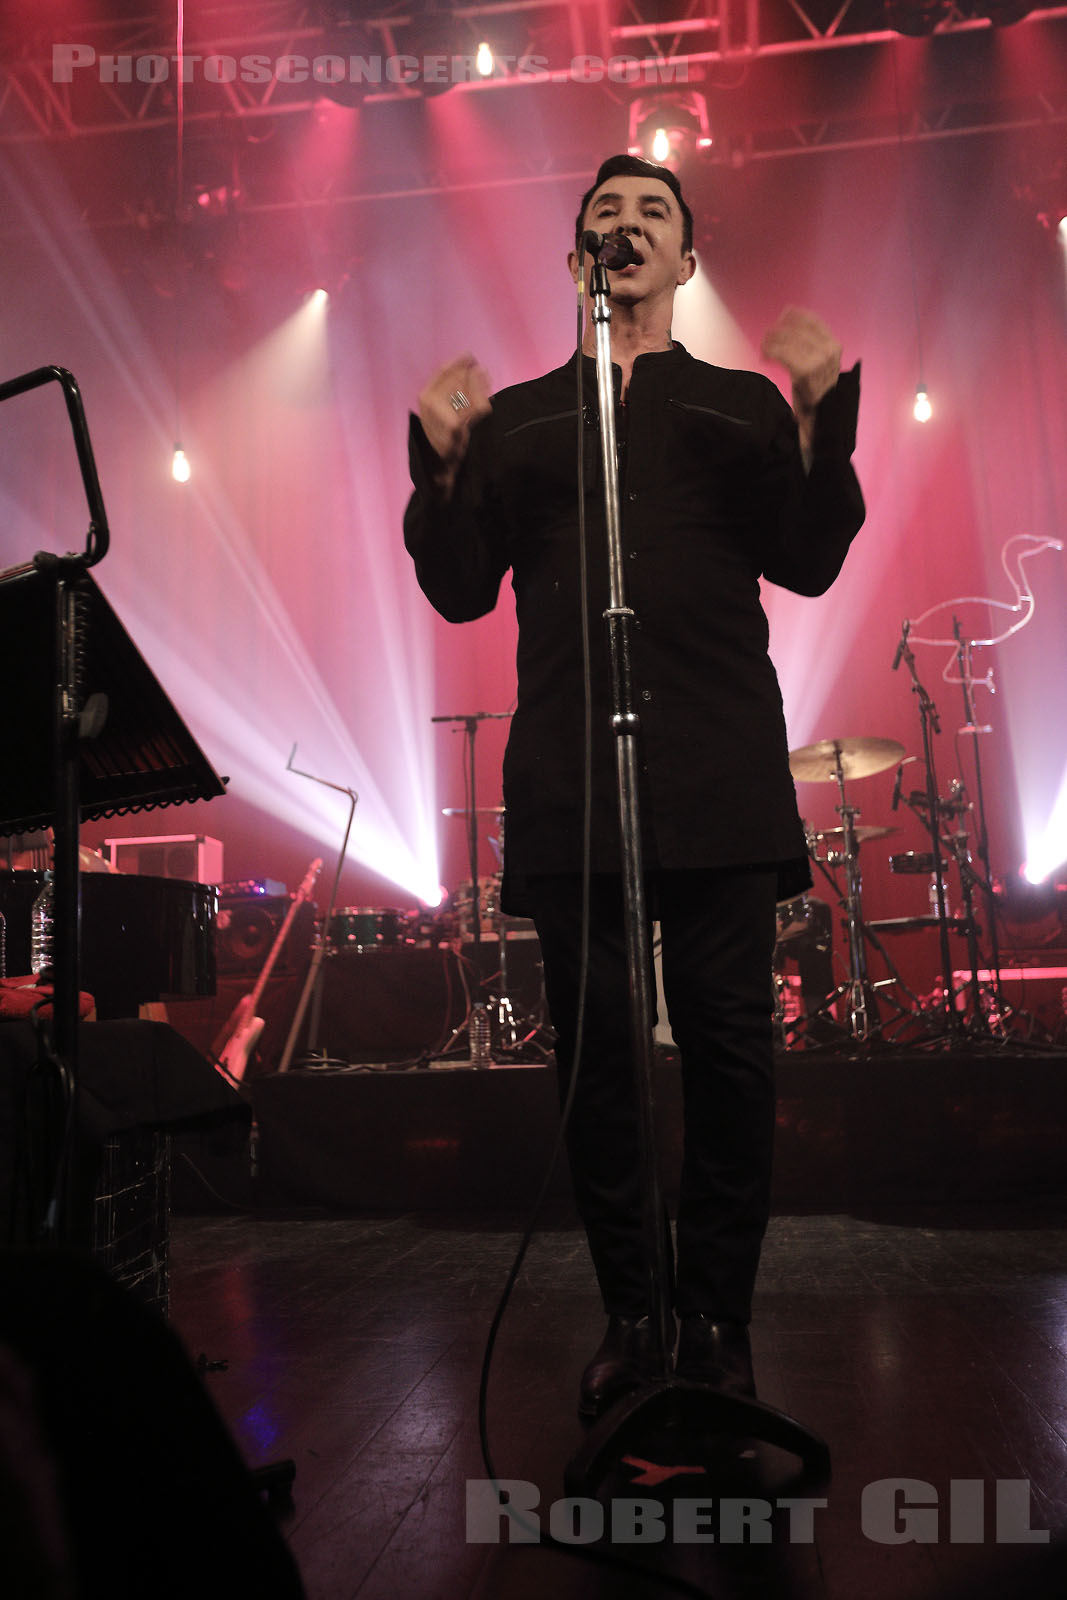 MARC ALMOND - 2019-03-30 - PARIS - Le Trianon